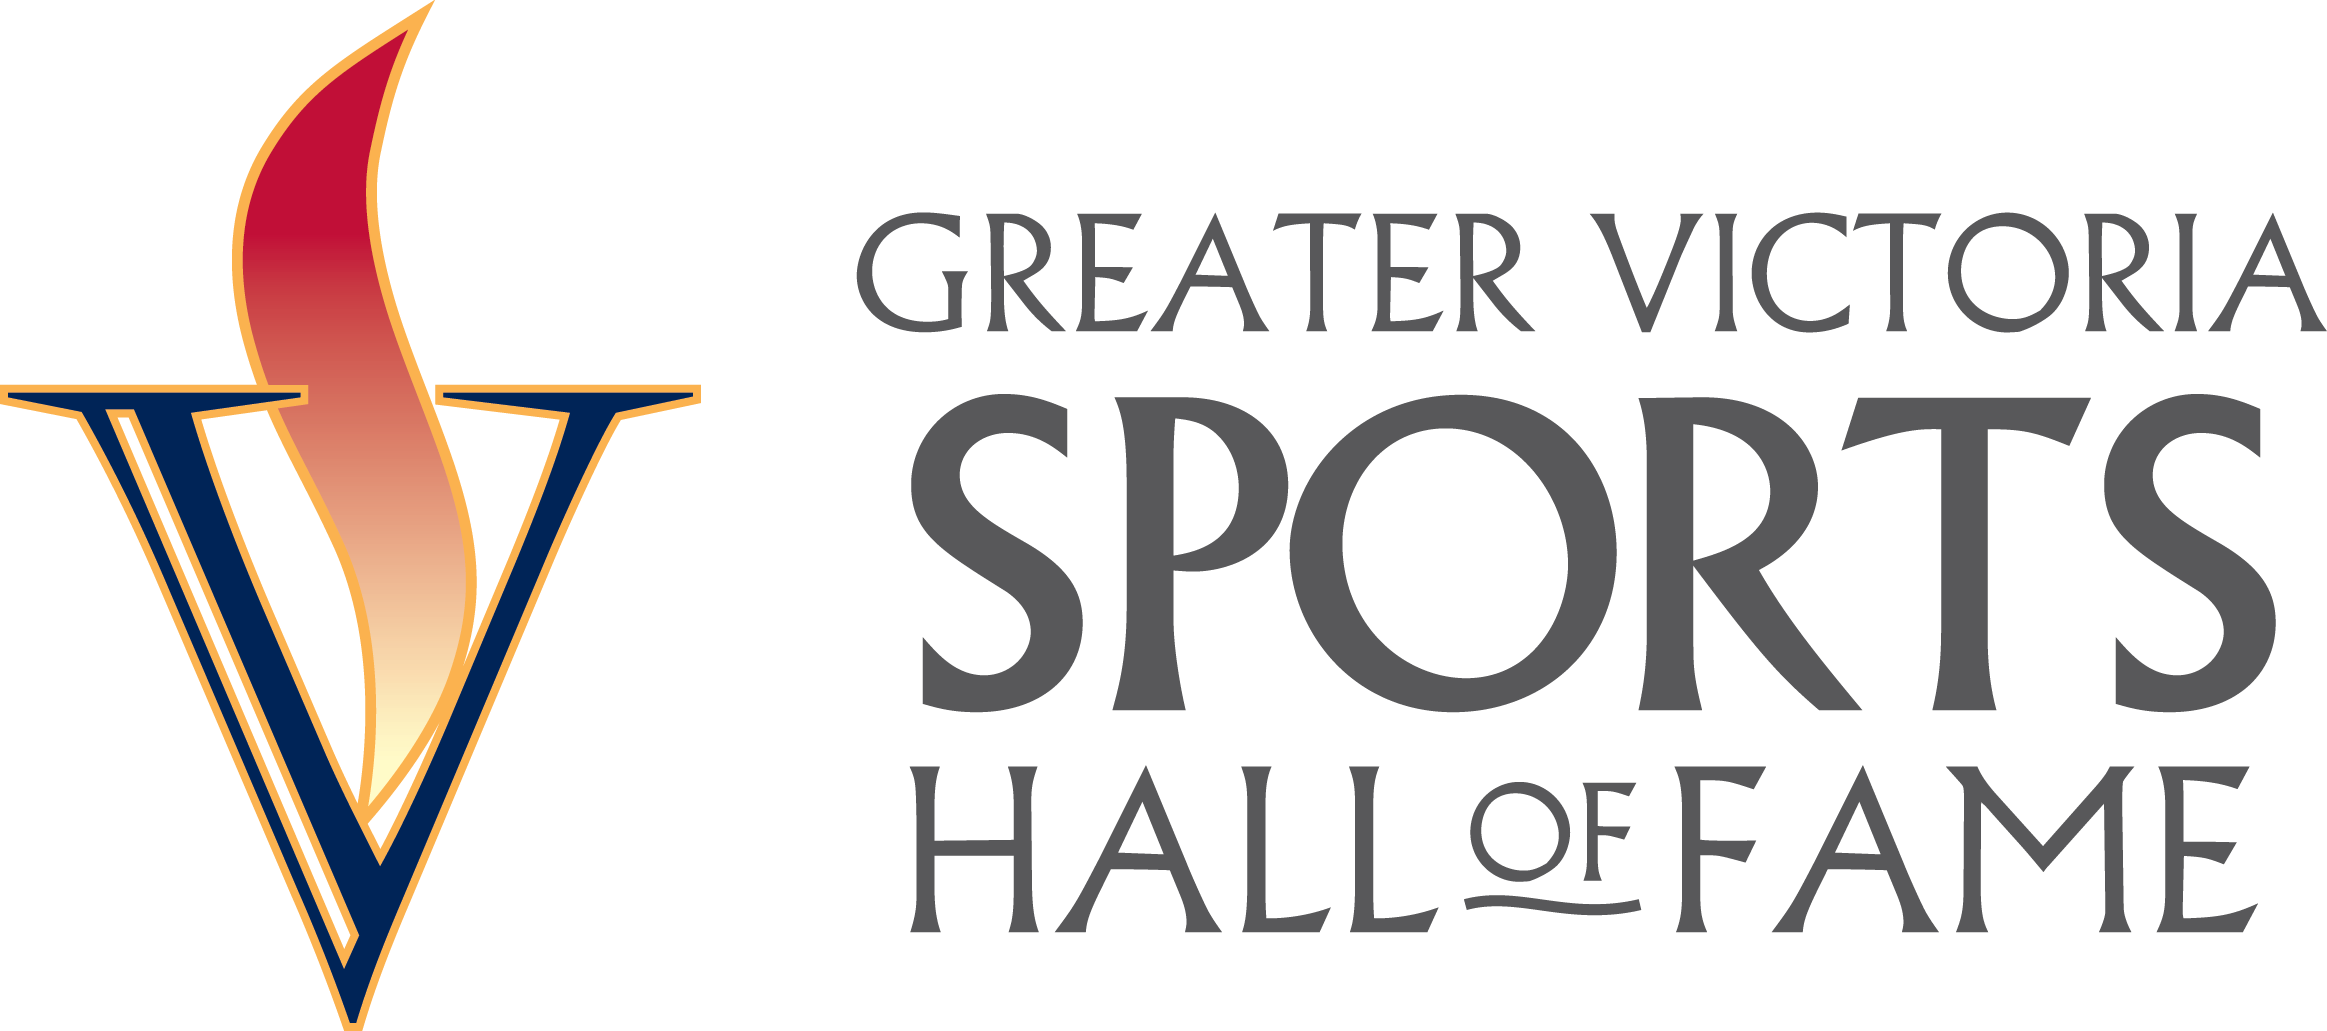 Greater Victoria Sports Hall of Fame logo